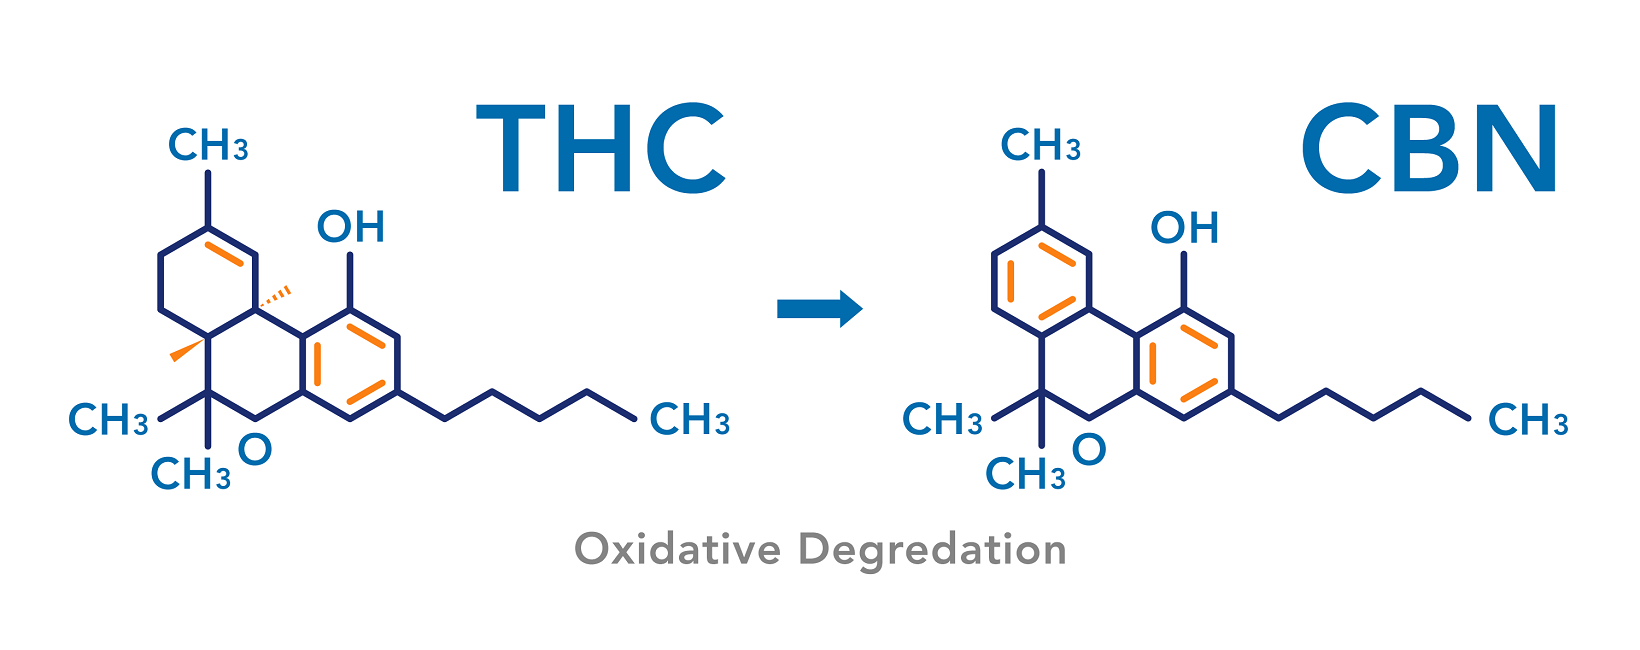 Converting THC to CBN